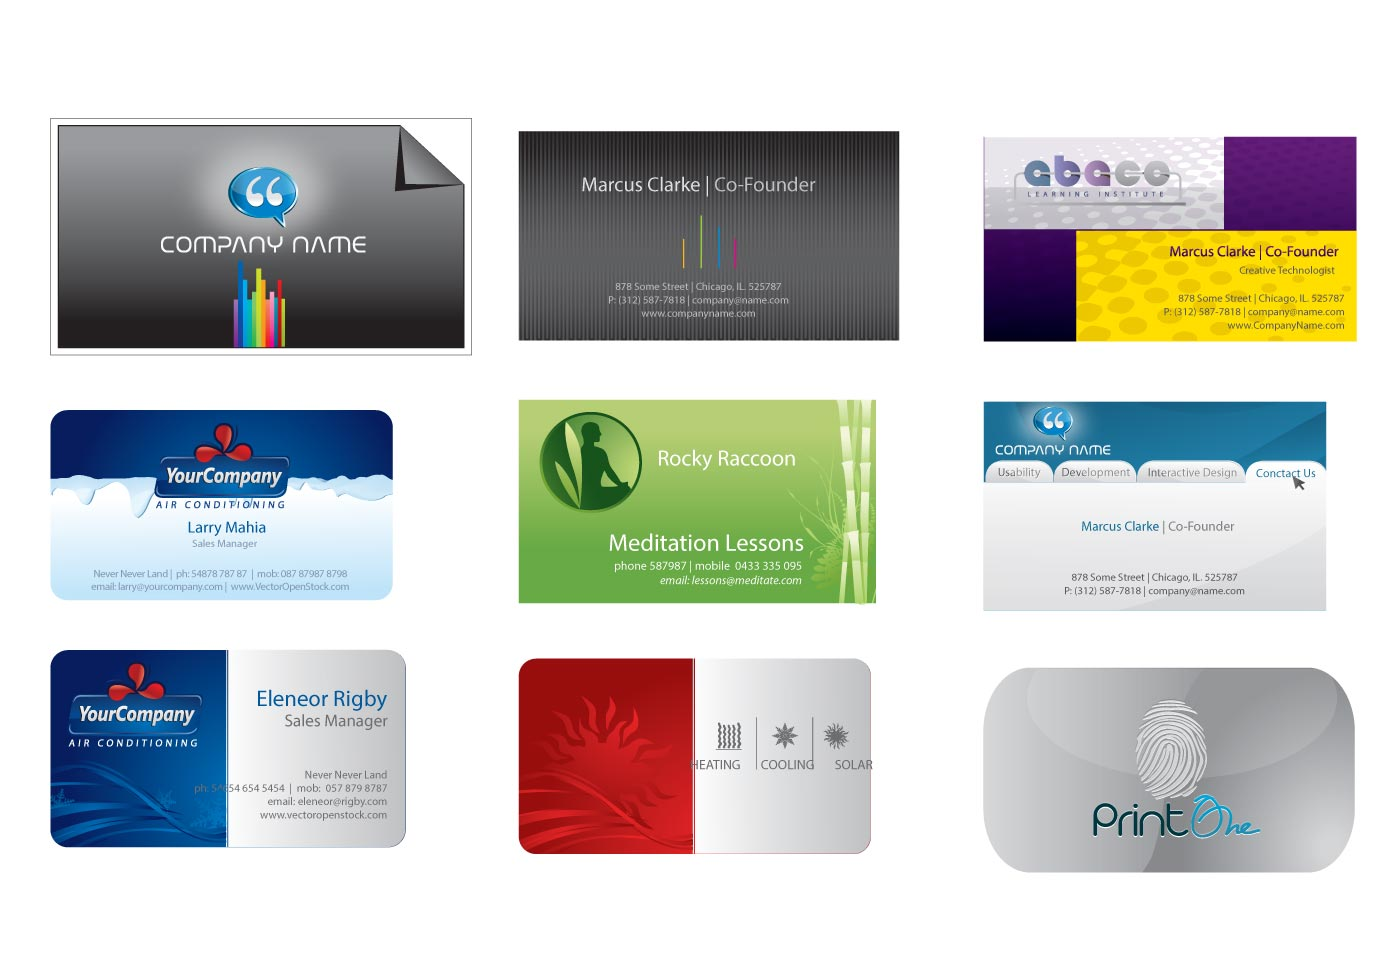 Business card templates download free vector art stock graphics business card templates download free vector art stock graphics images accmission Choice Image